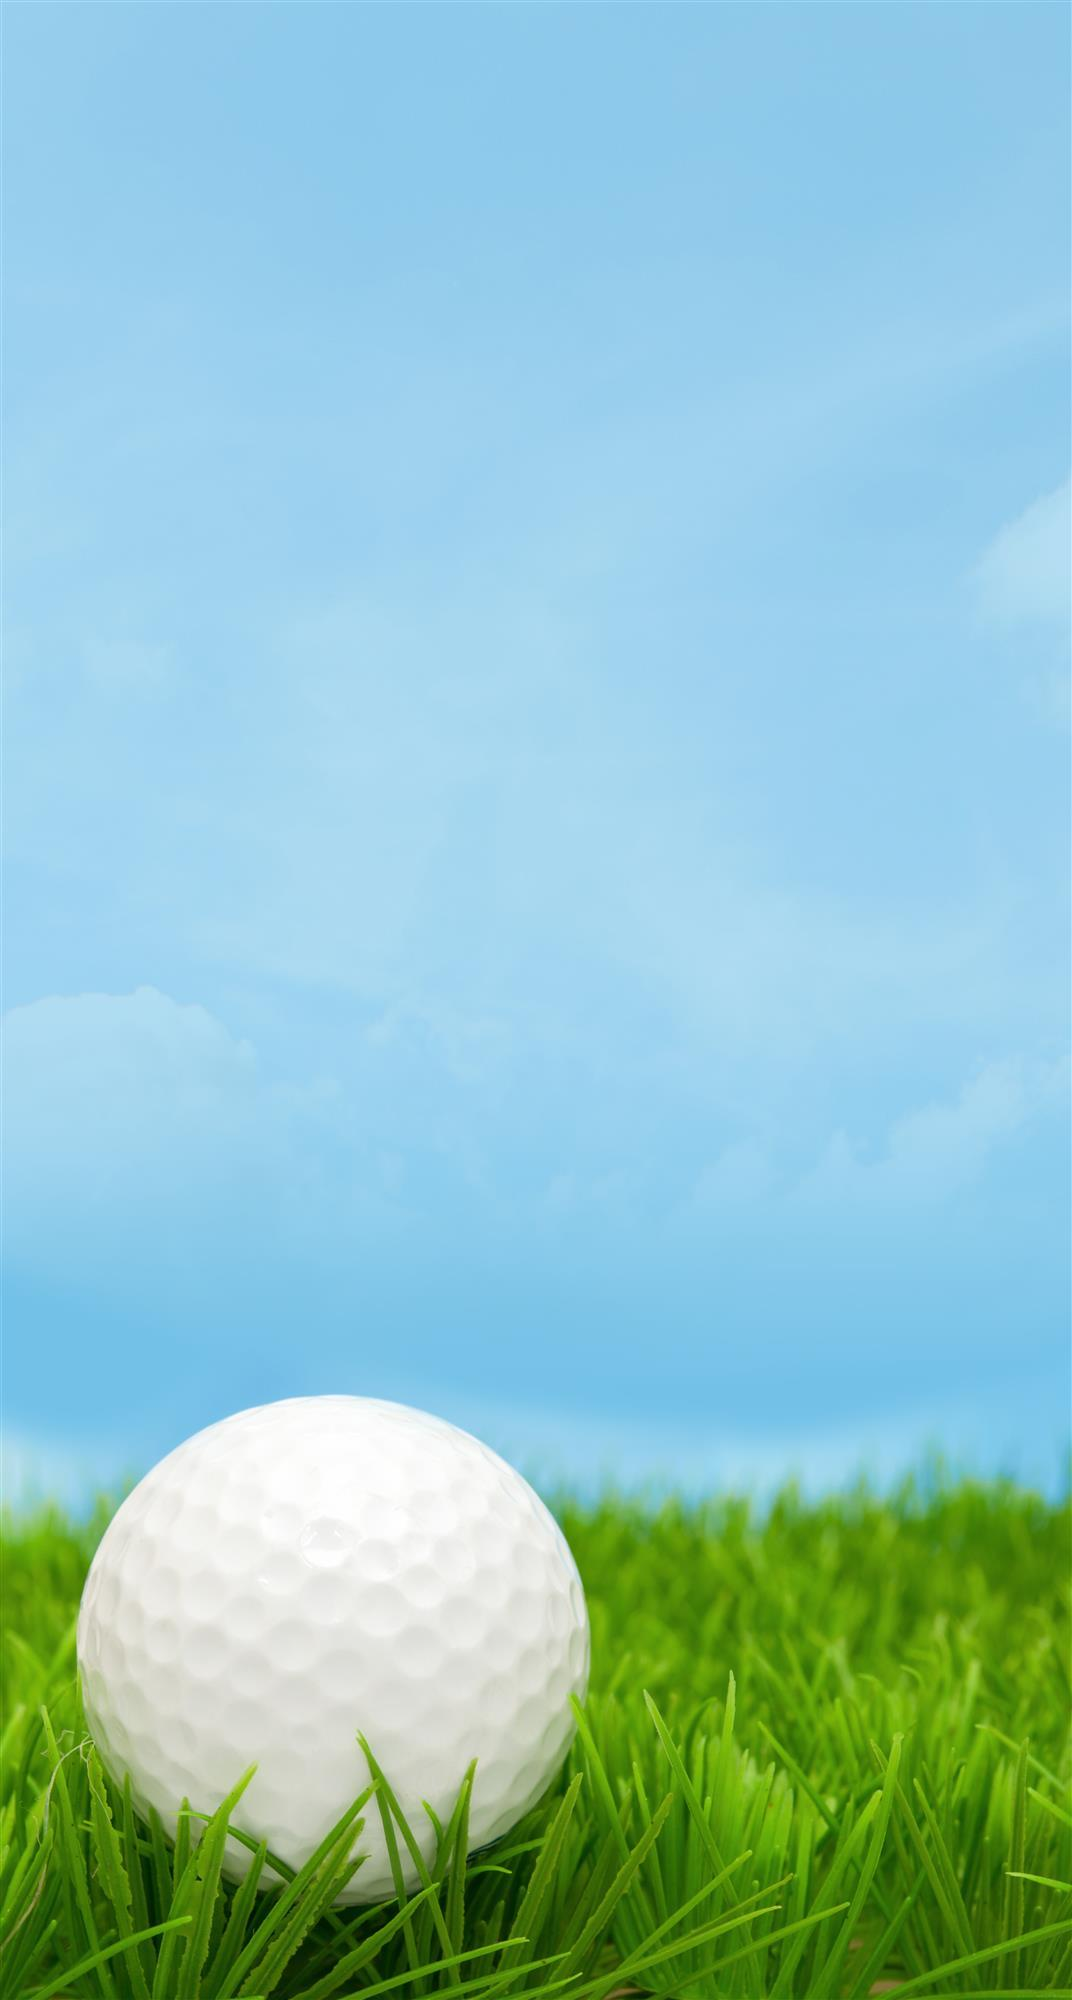 Golf Ball Landing On Grass